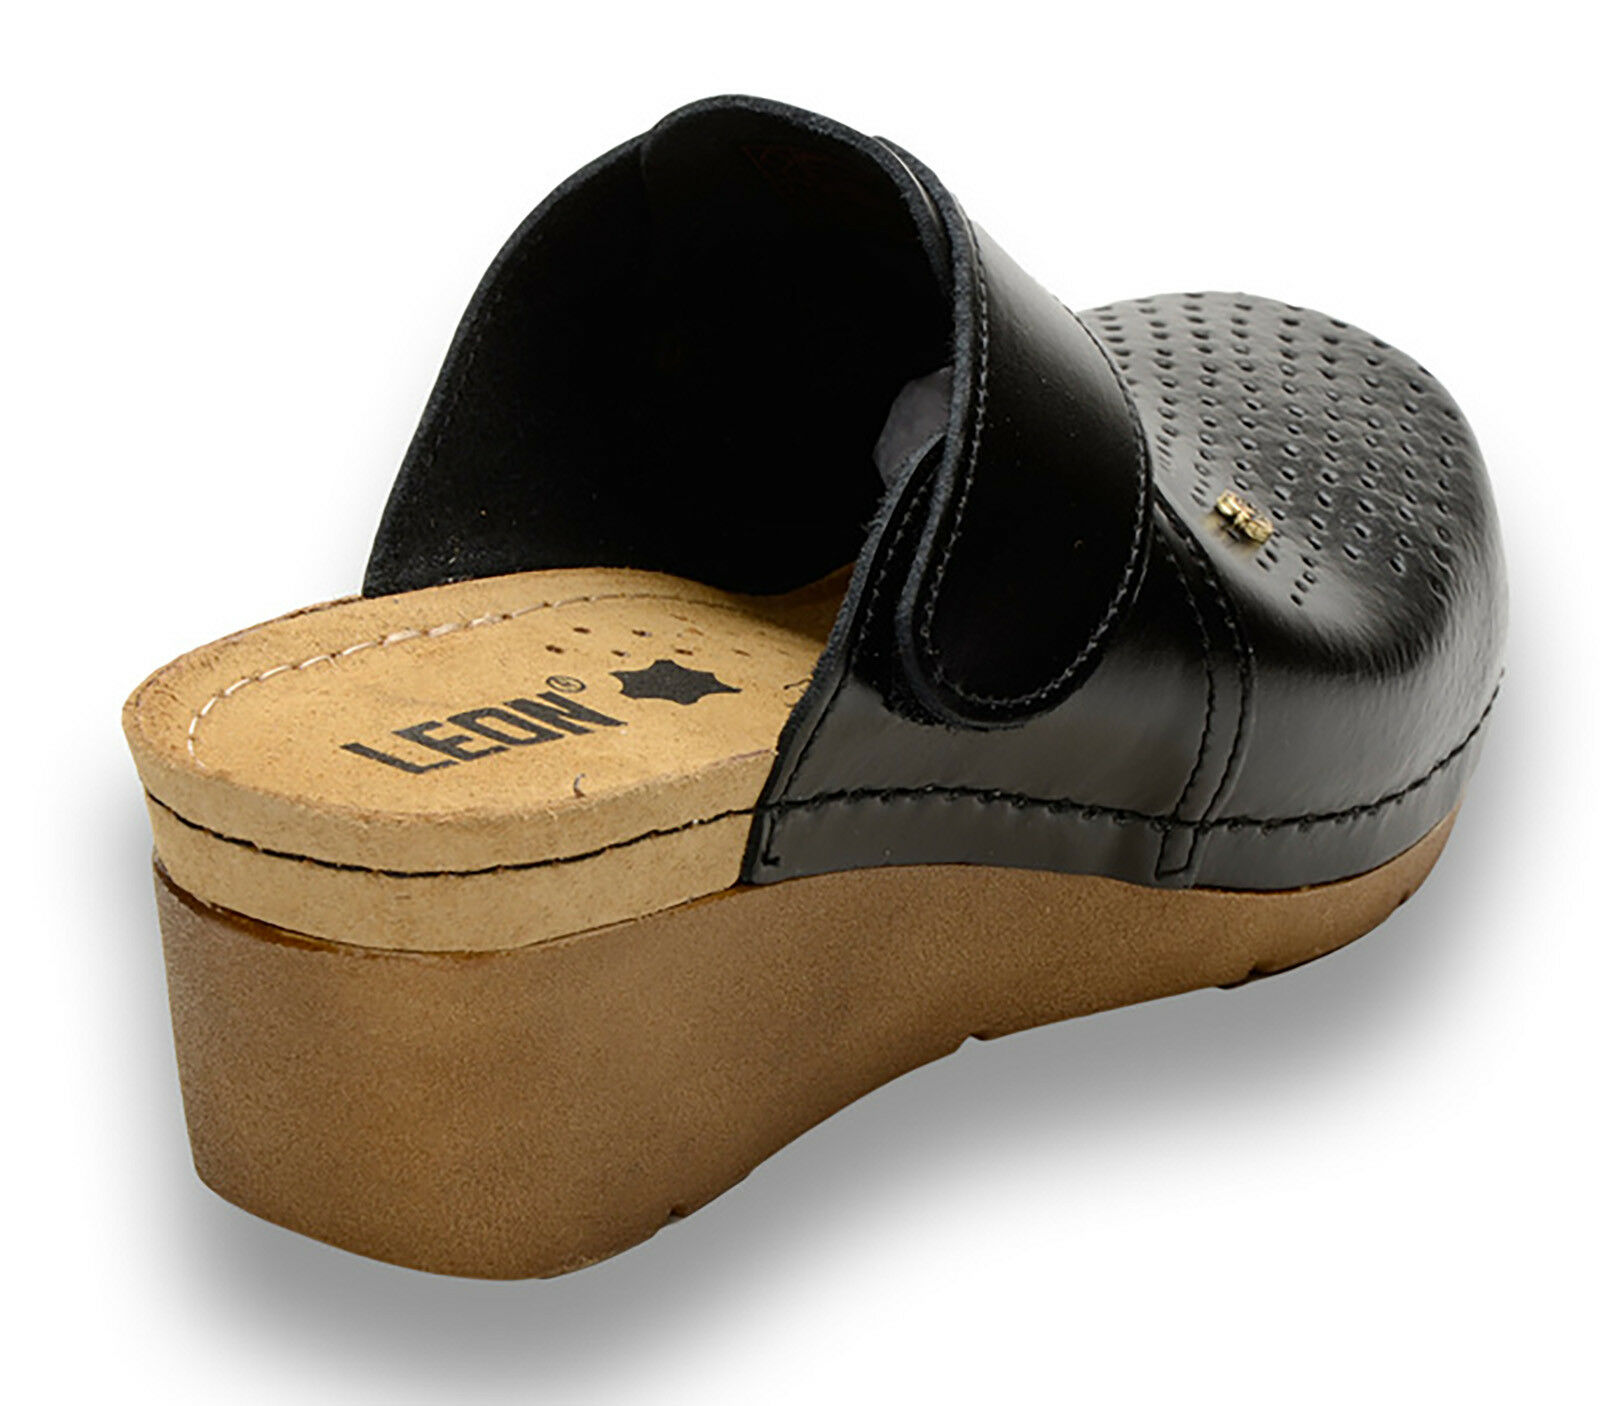 LEON 1001 Ladies Women Leather Slip On Mules Clogs Clogs Clogs Slippers Sandals, Black New ad418f